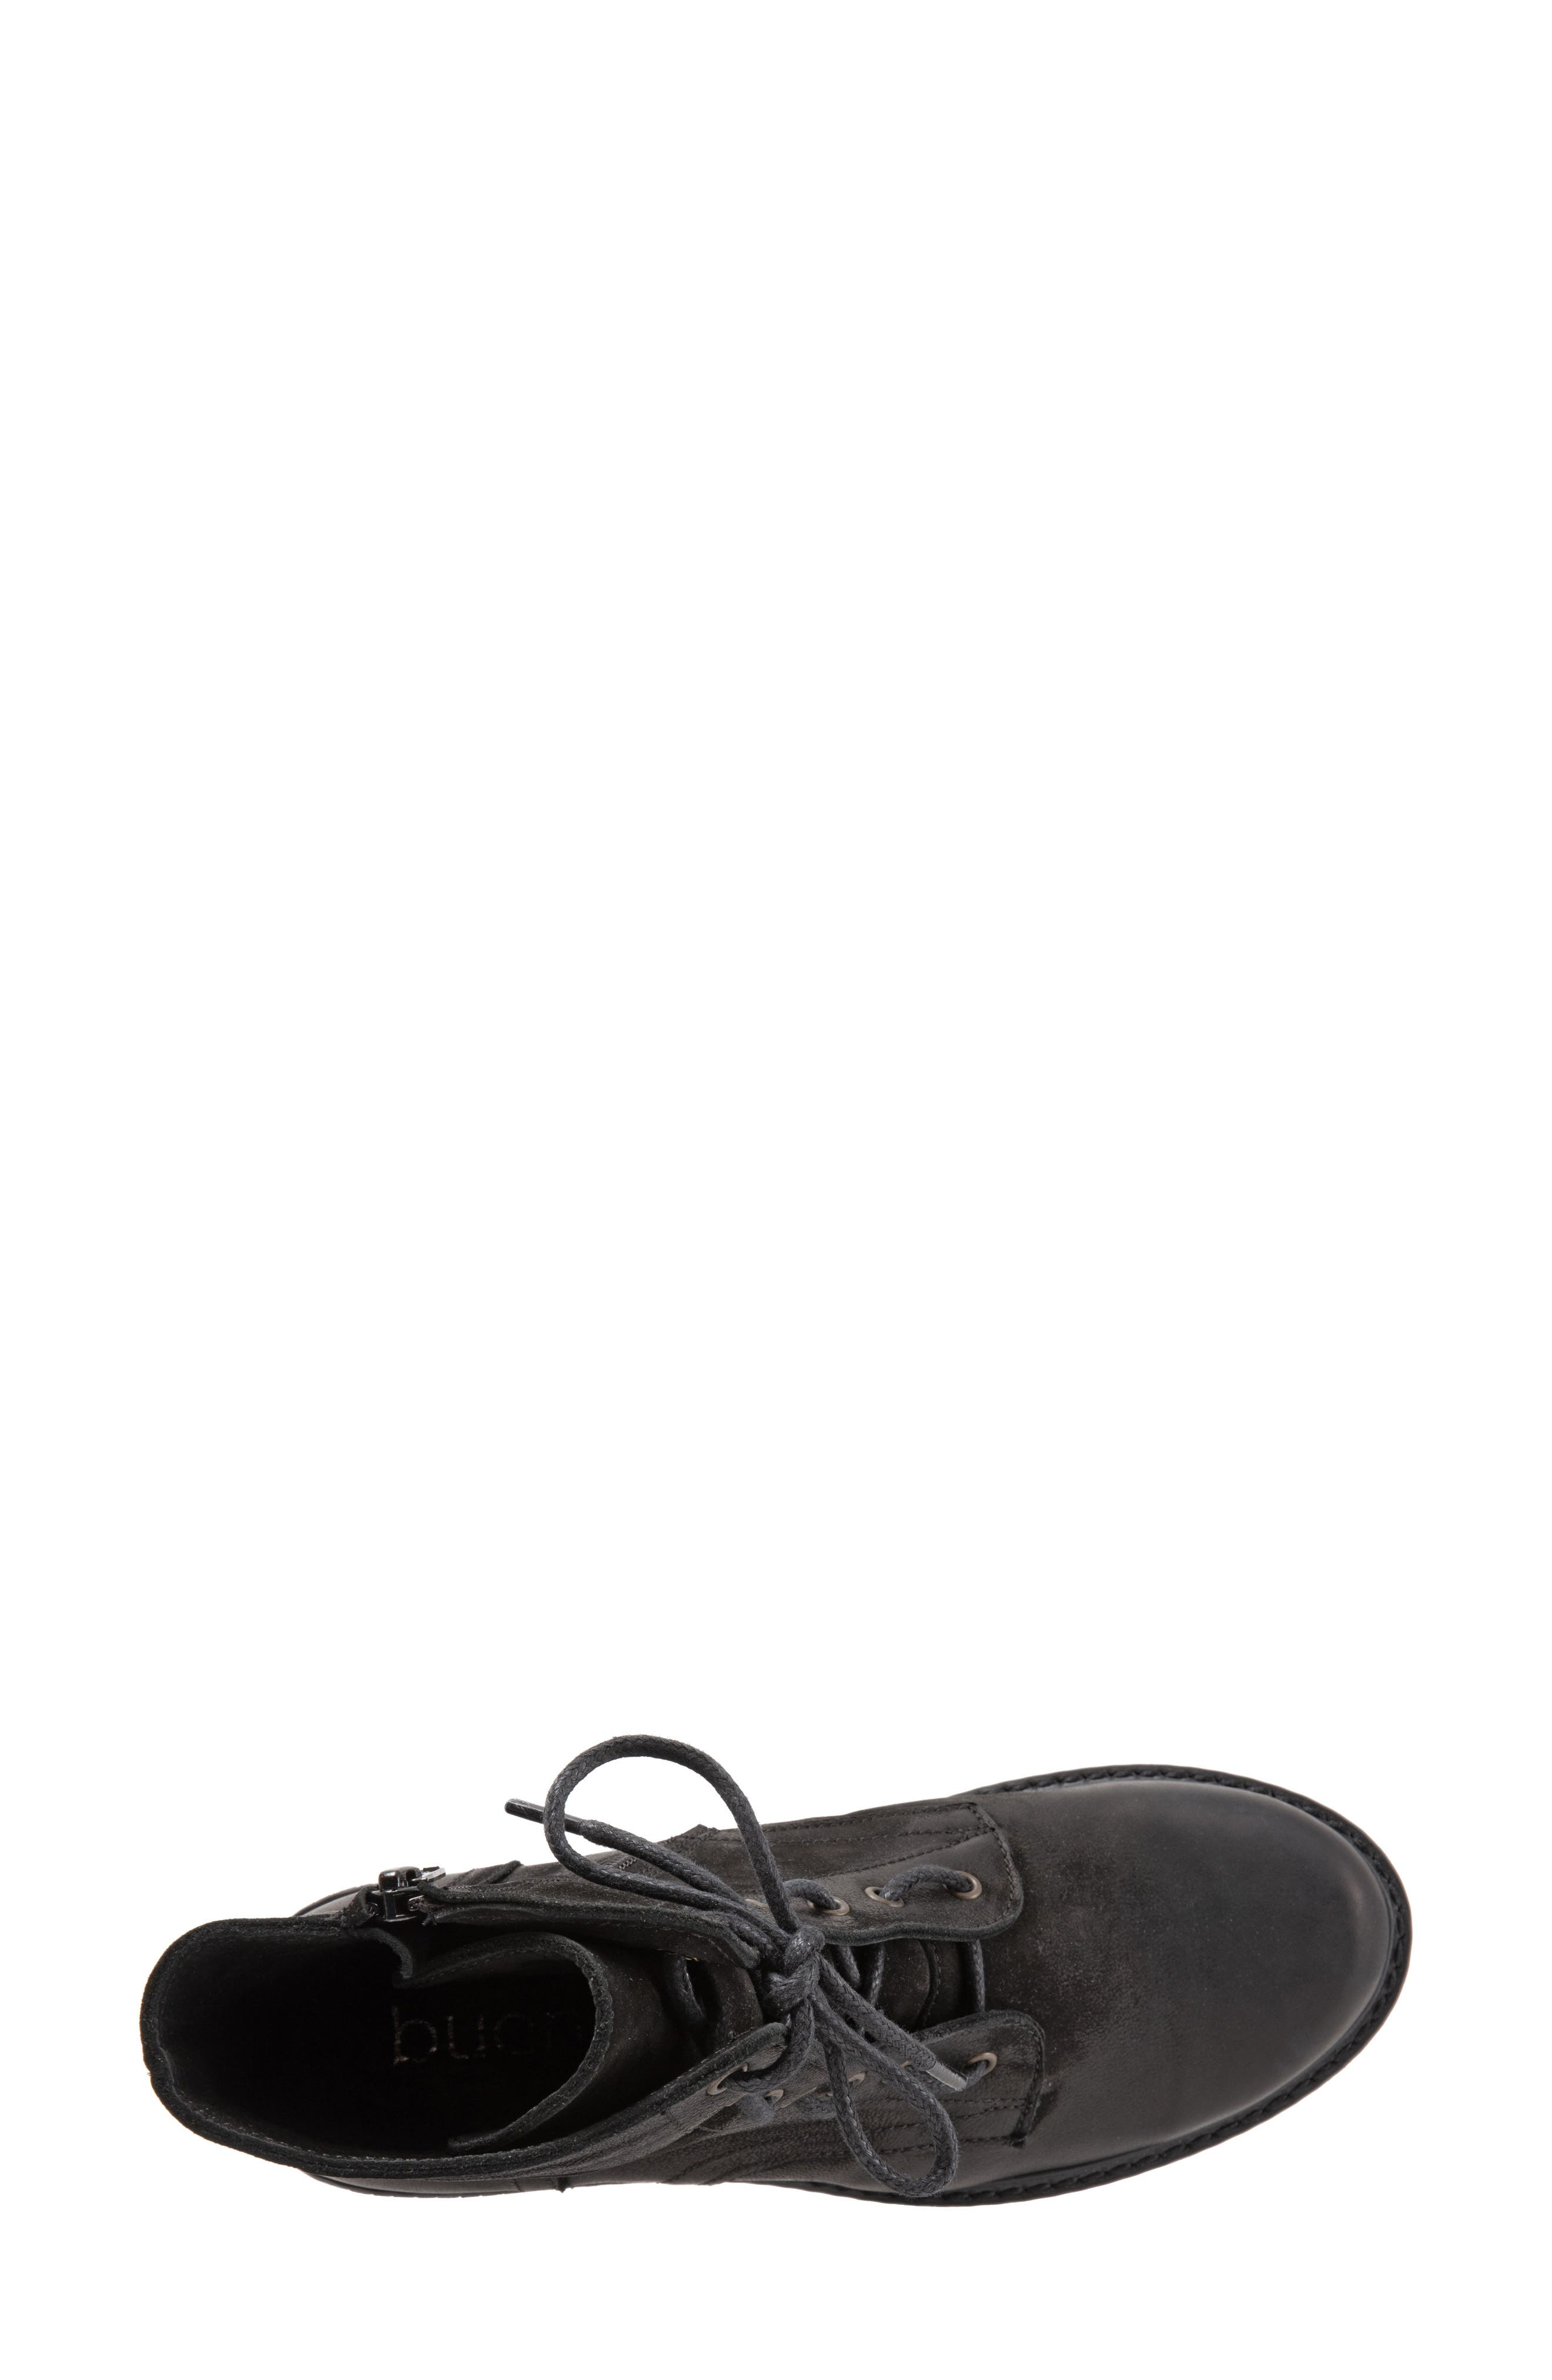 Getty Military Boot,                             Alternate thumbnail 5, color,                             BLACK NATURAL LEATHER